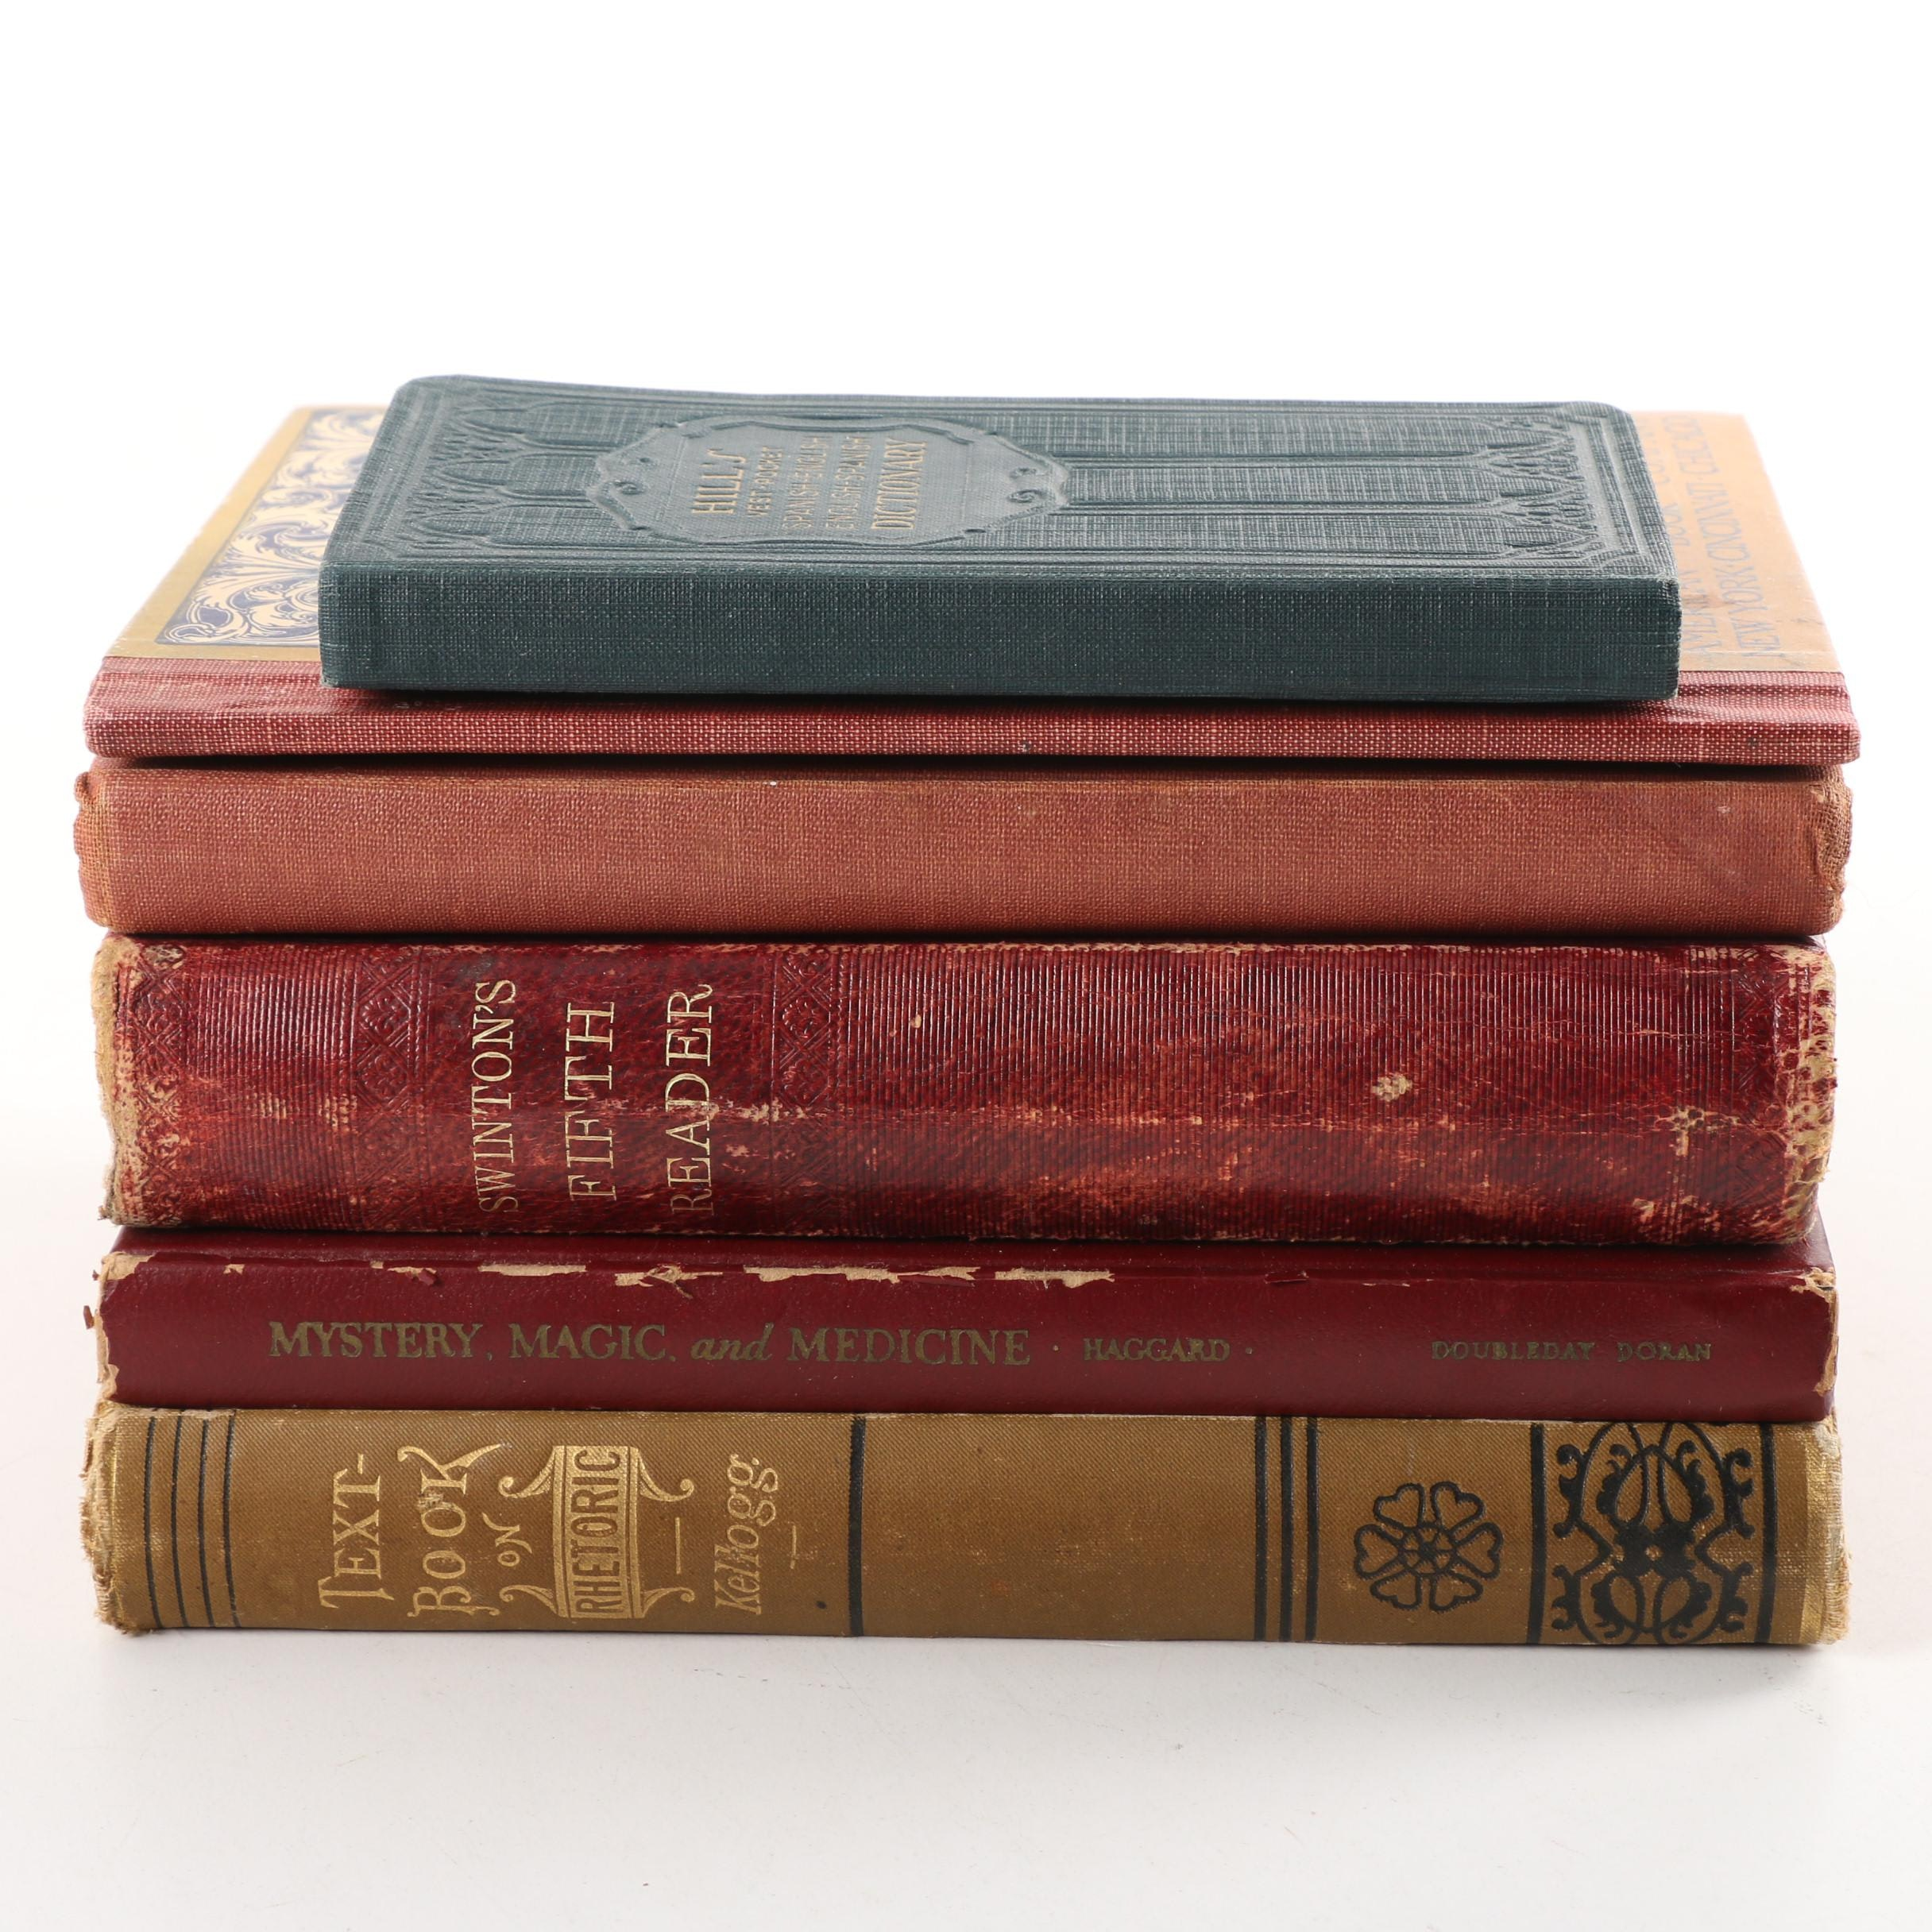 Antique and Vintage School Books and Dictionaries